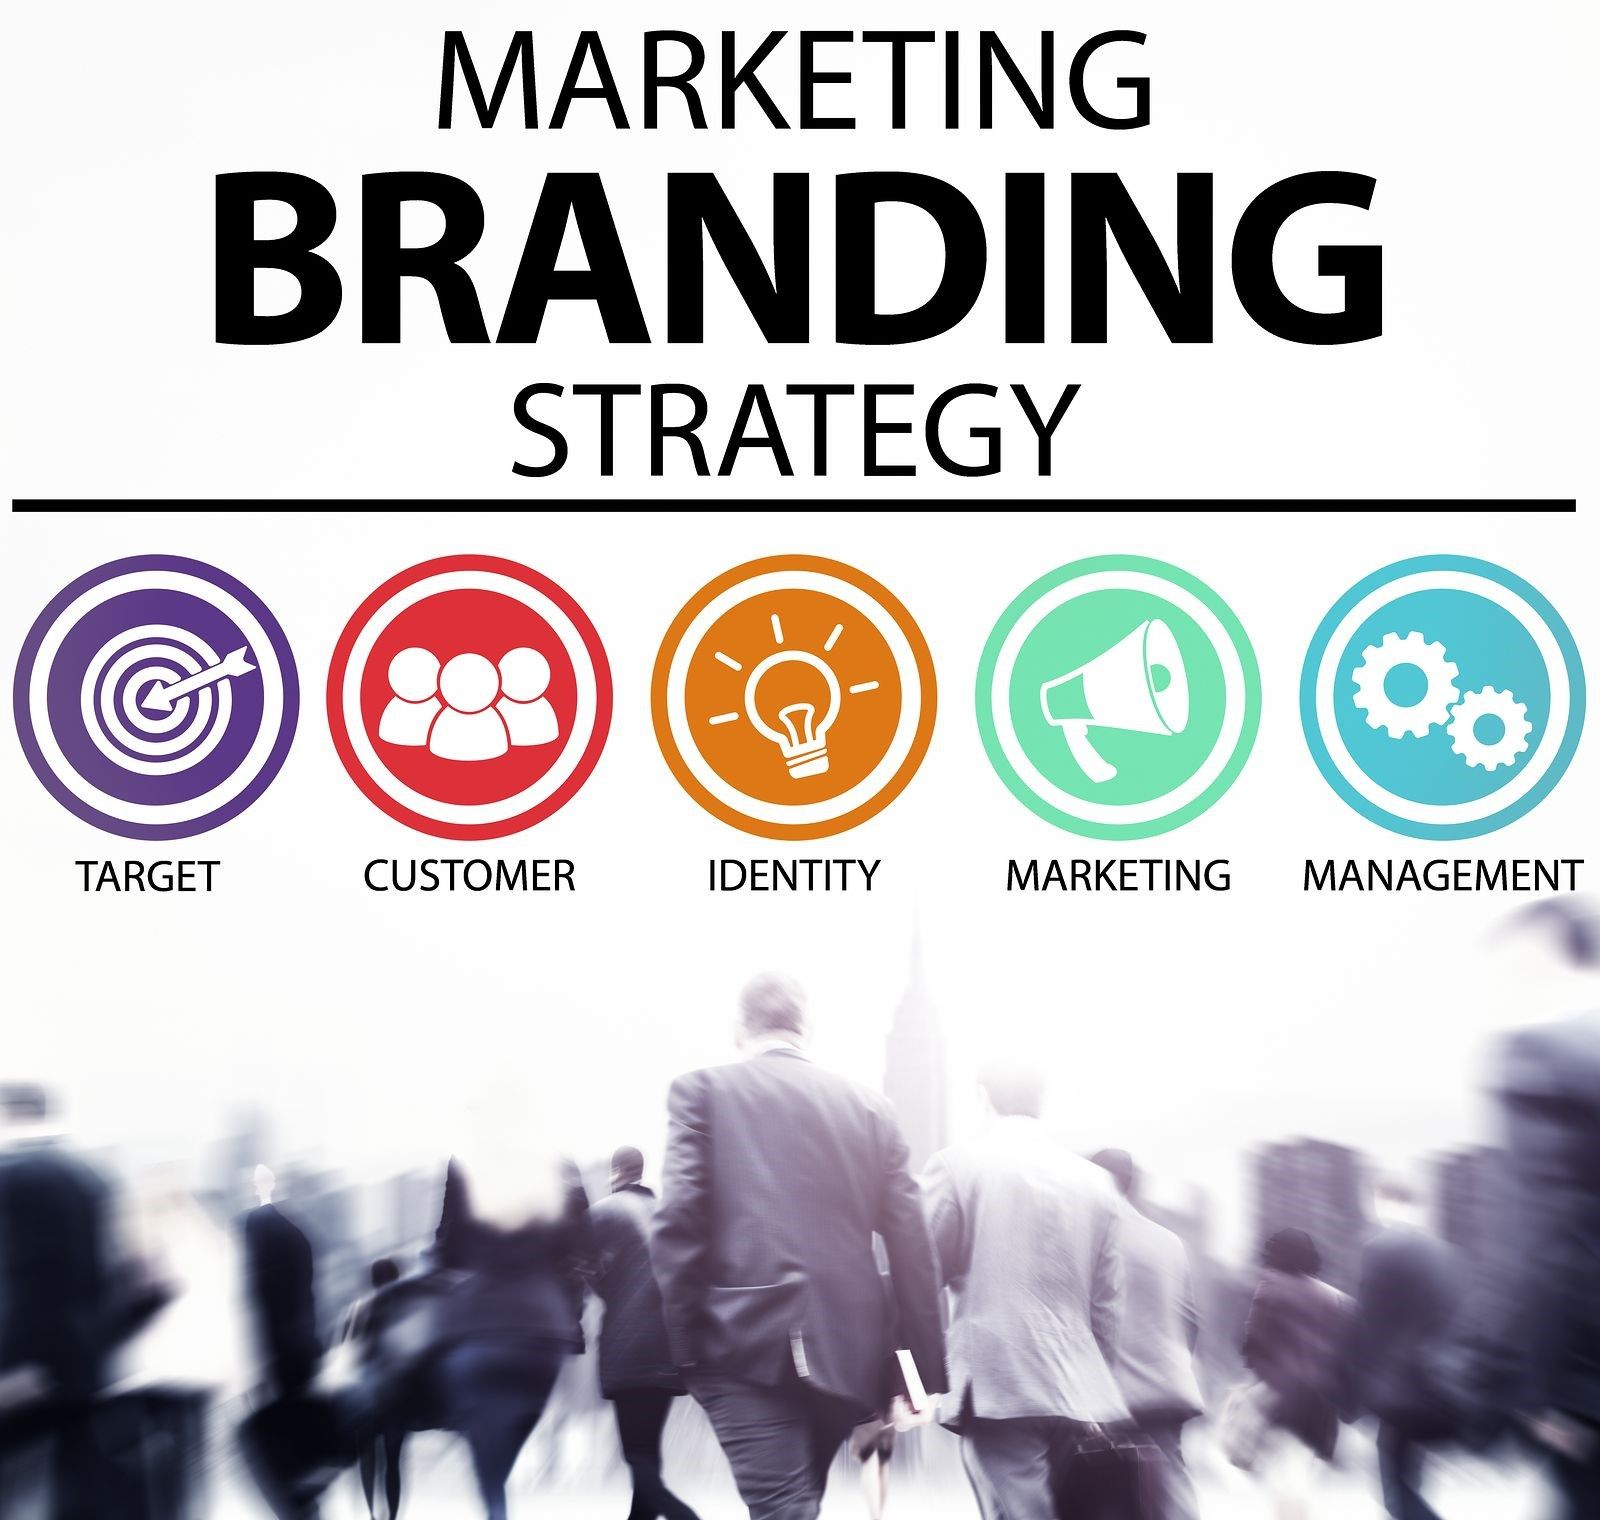 Brandingagencies should counsel you about creating